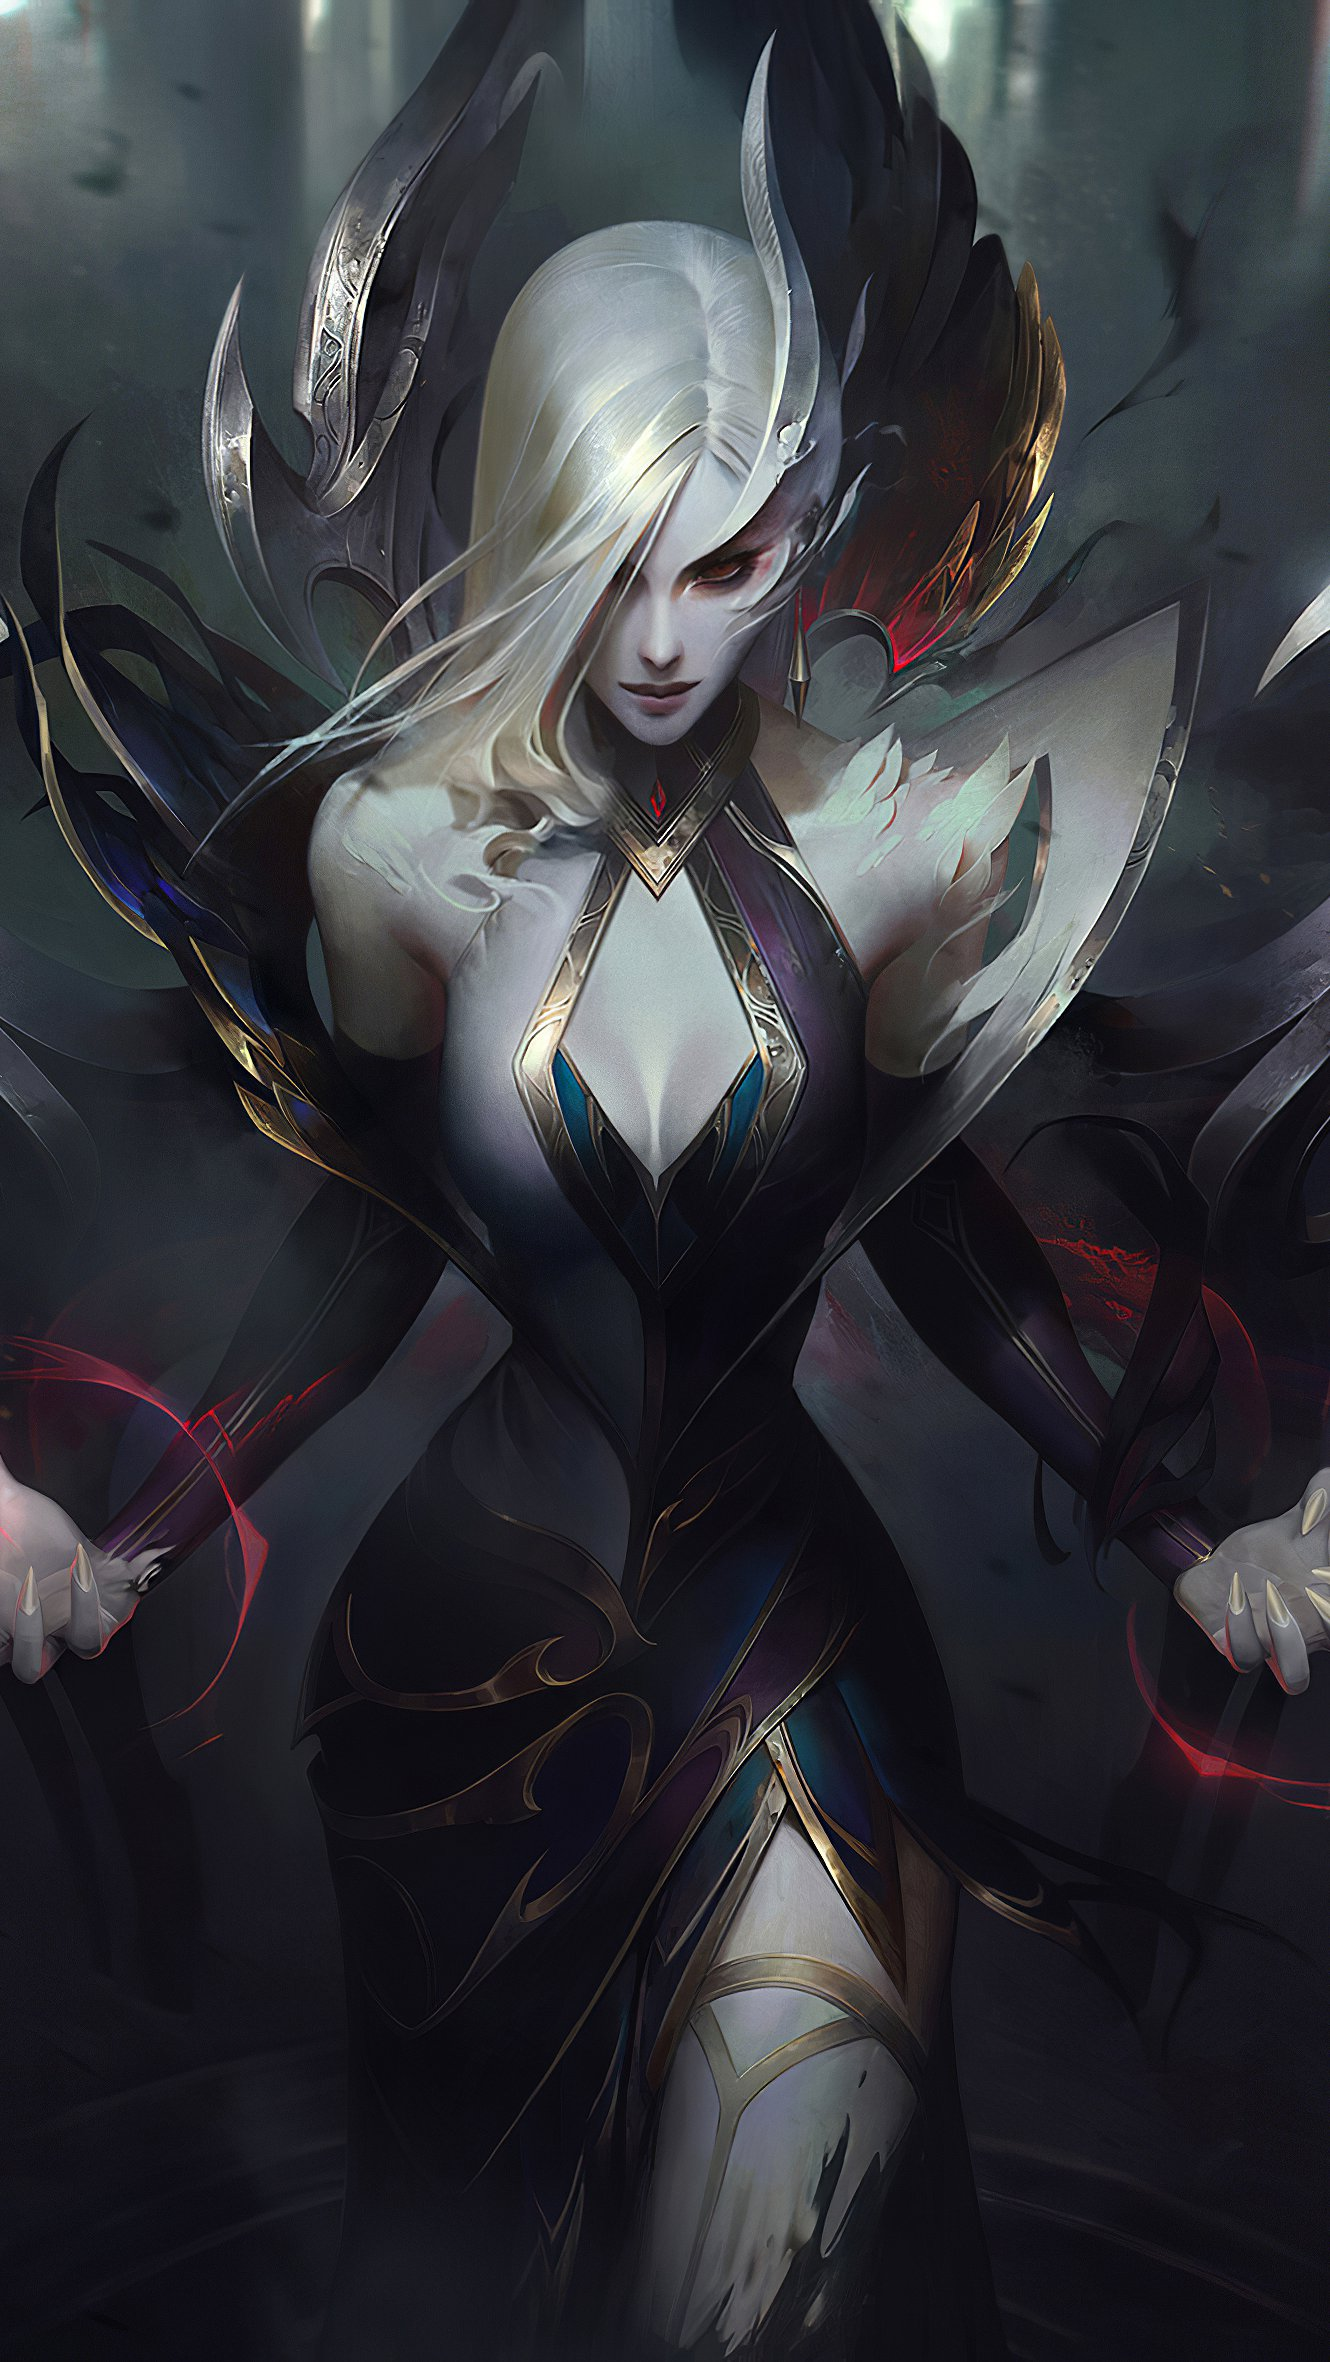 Fondos de pantalla Coven Morgana de League of Legends Vertical